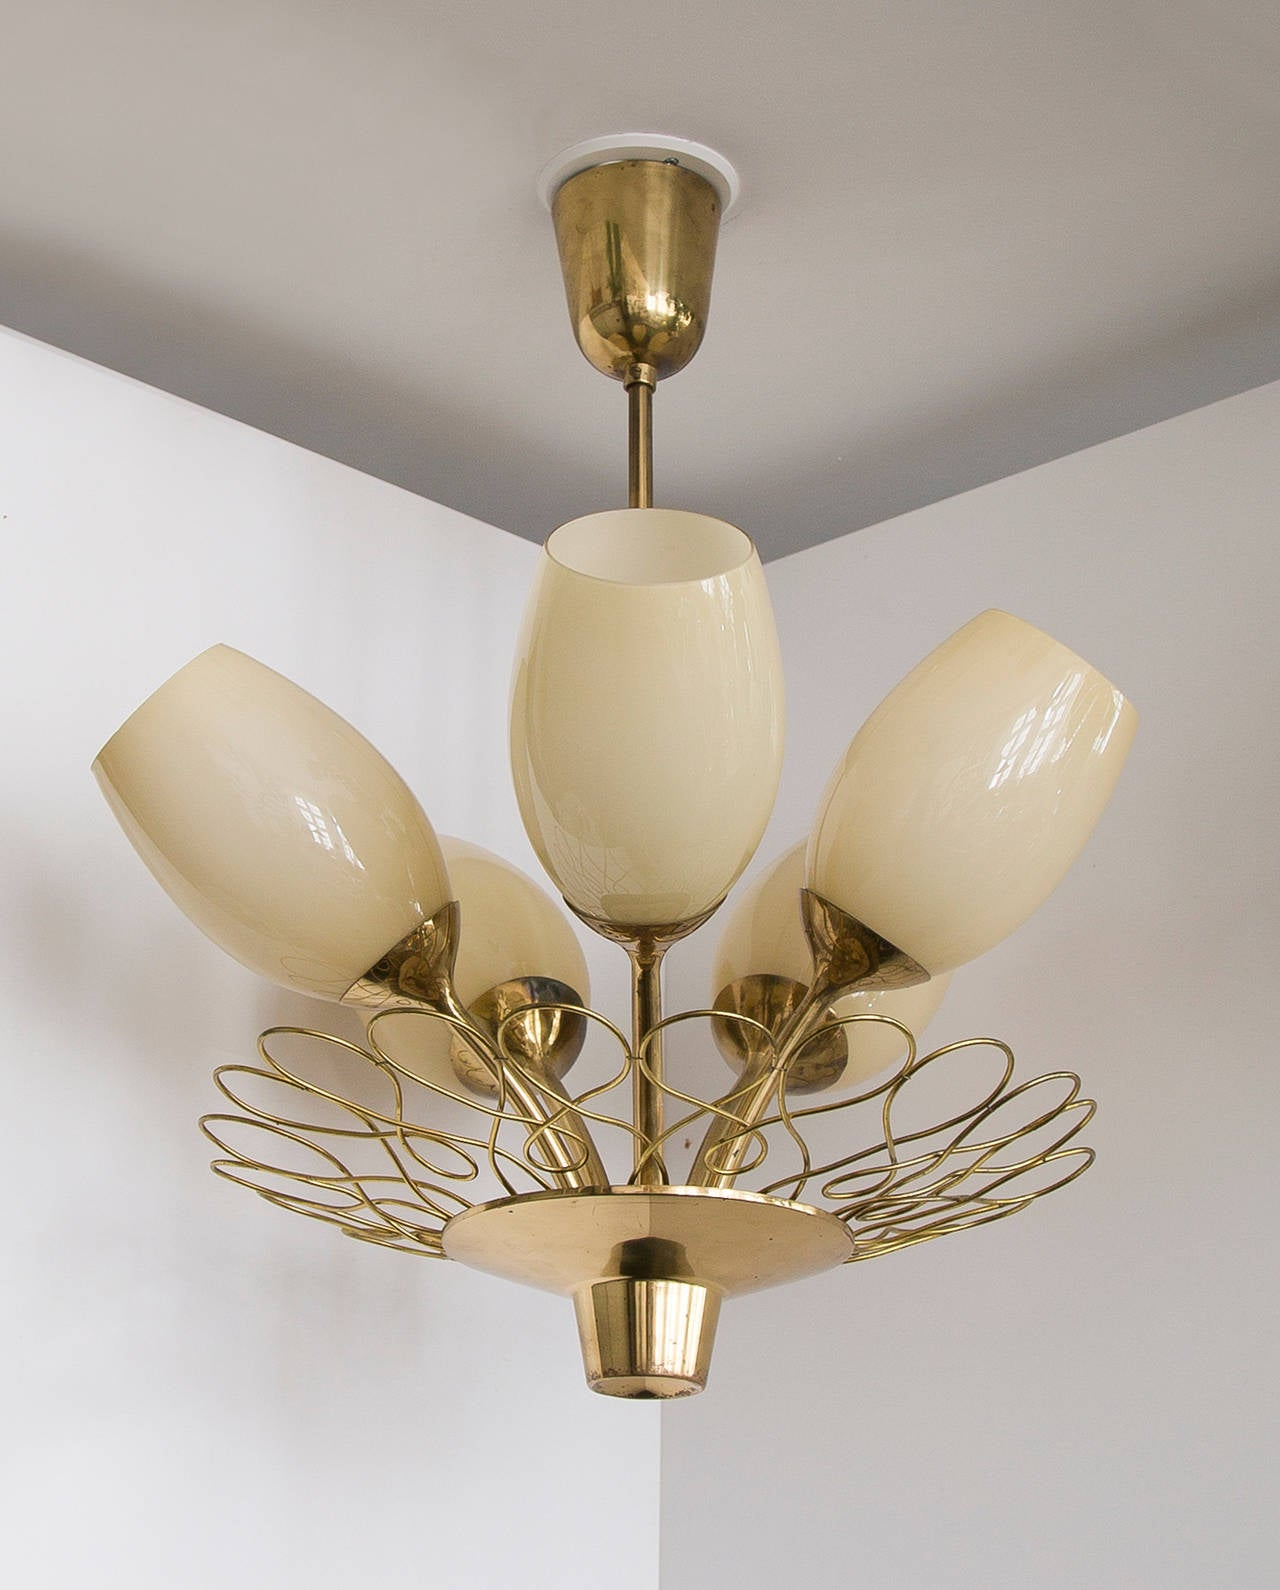 Scandinavian Modern Paavo Tynell Ceiling Lamp Taito Oy For Sale